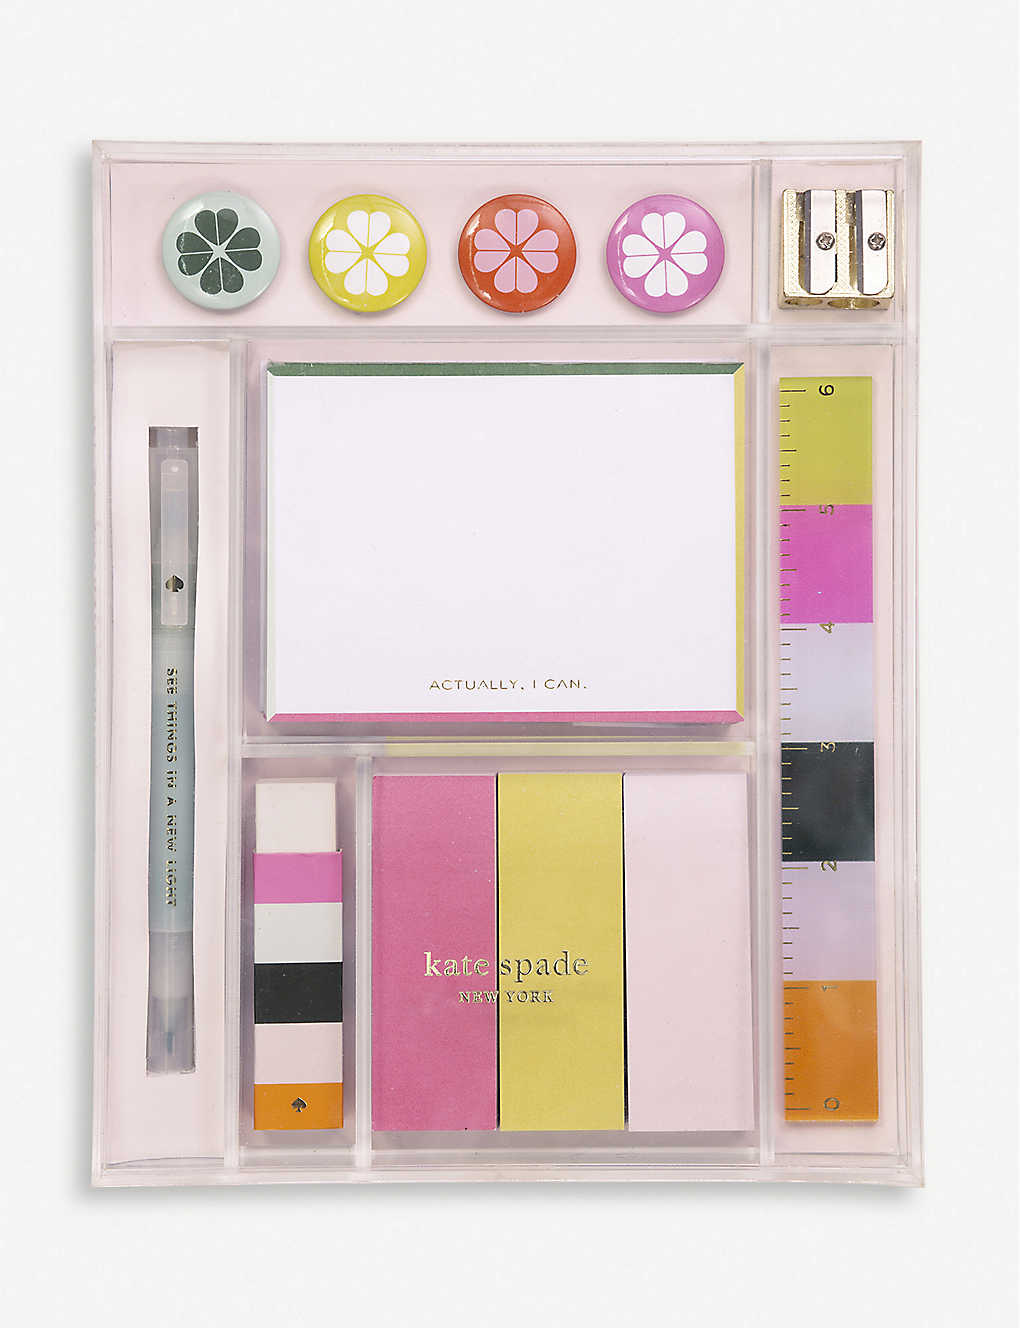 KATE SPADE NEW YORK: Actually I Can stationery tackle box